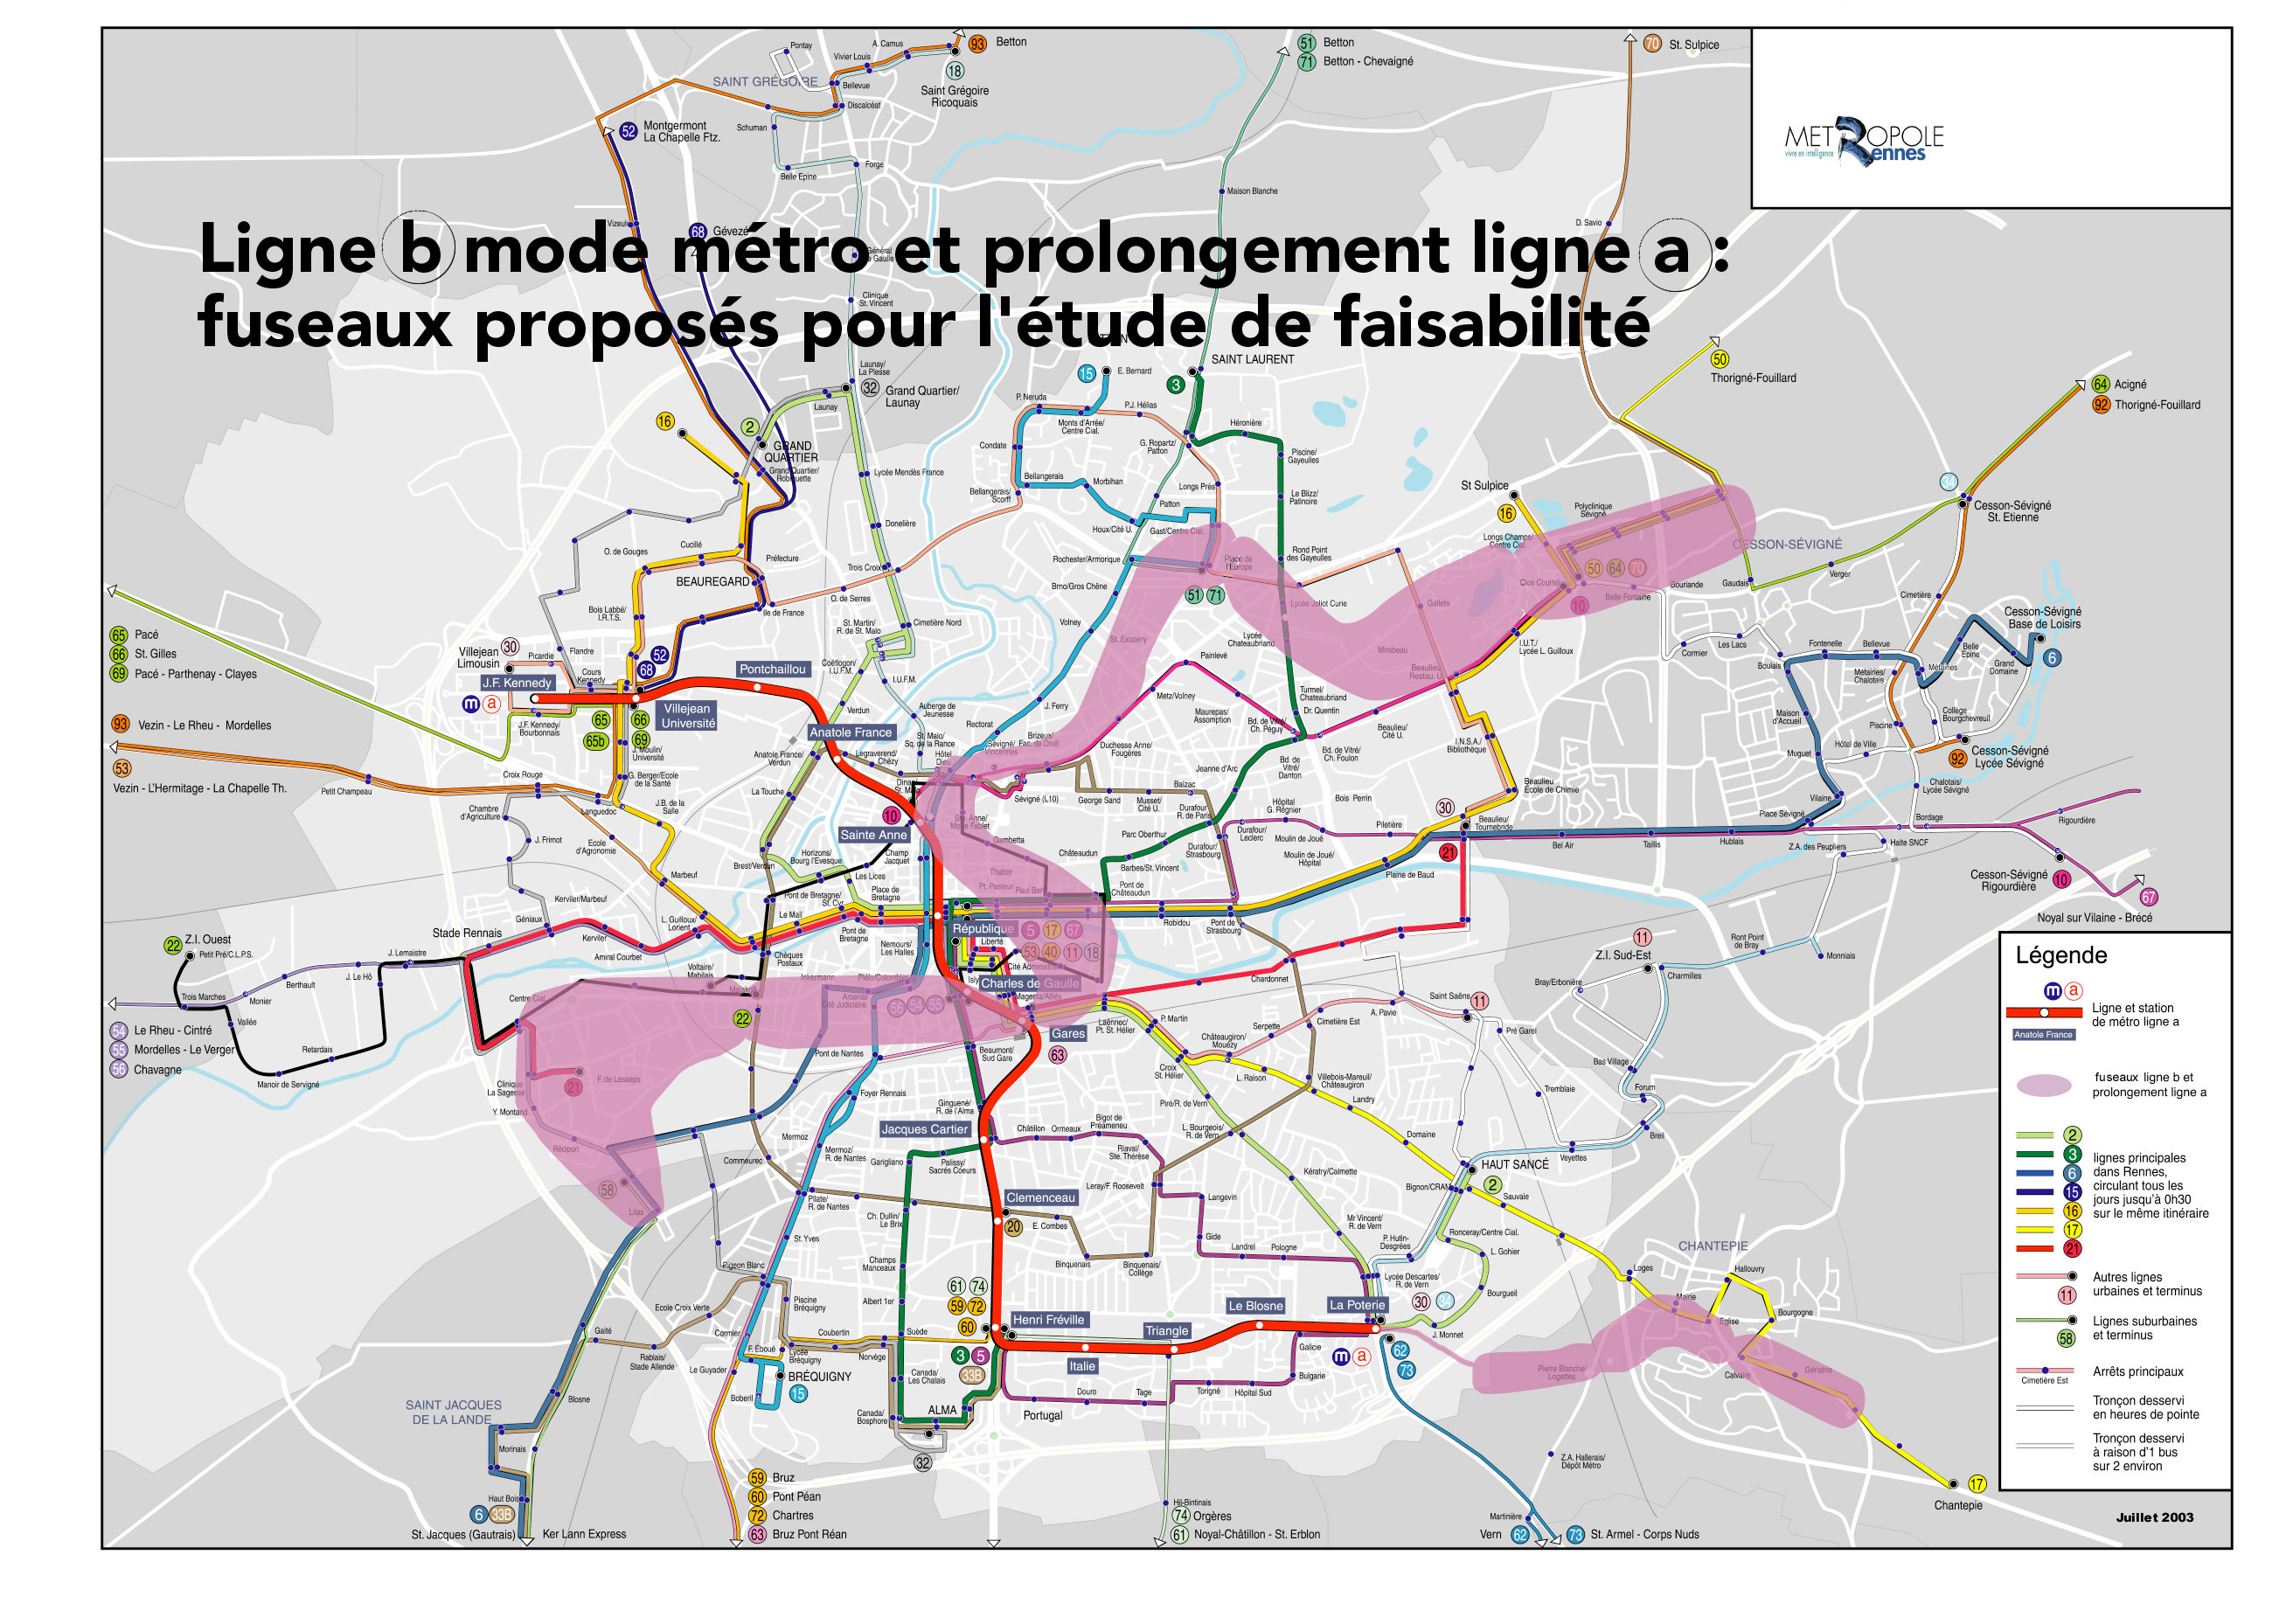 Map Of France Rennes.Metro Map Of Rennes Metro Maps Of France Planetolog Com